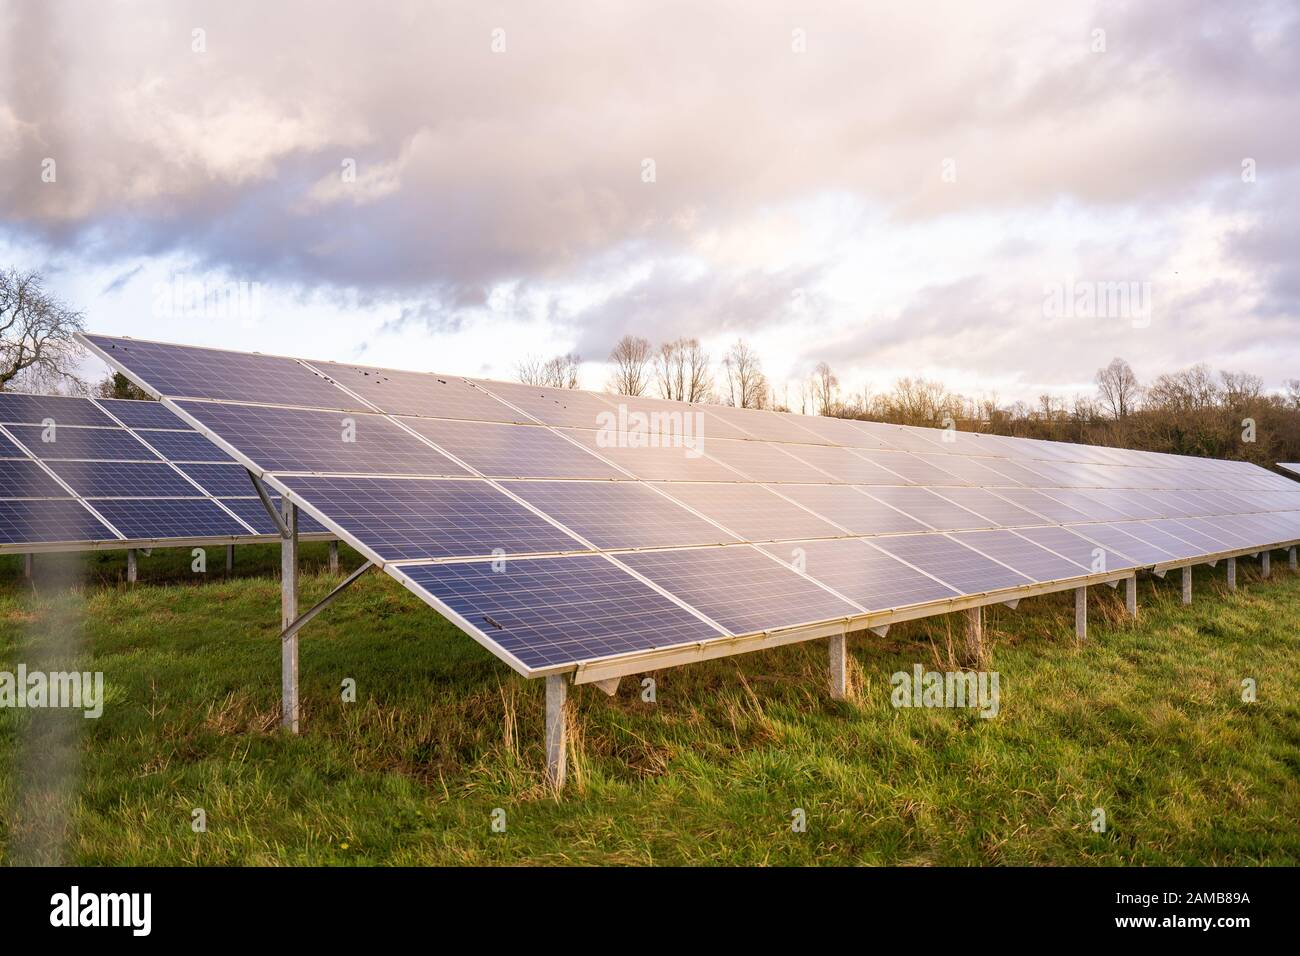 Ground view of a solar farm in Staffordshire, renewable, sustainable energy due to climate change, natural energy Solar panels in the countryside Stock Photo